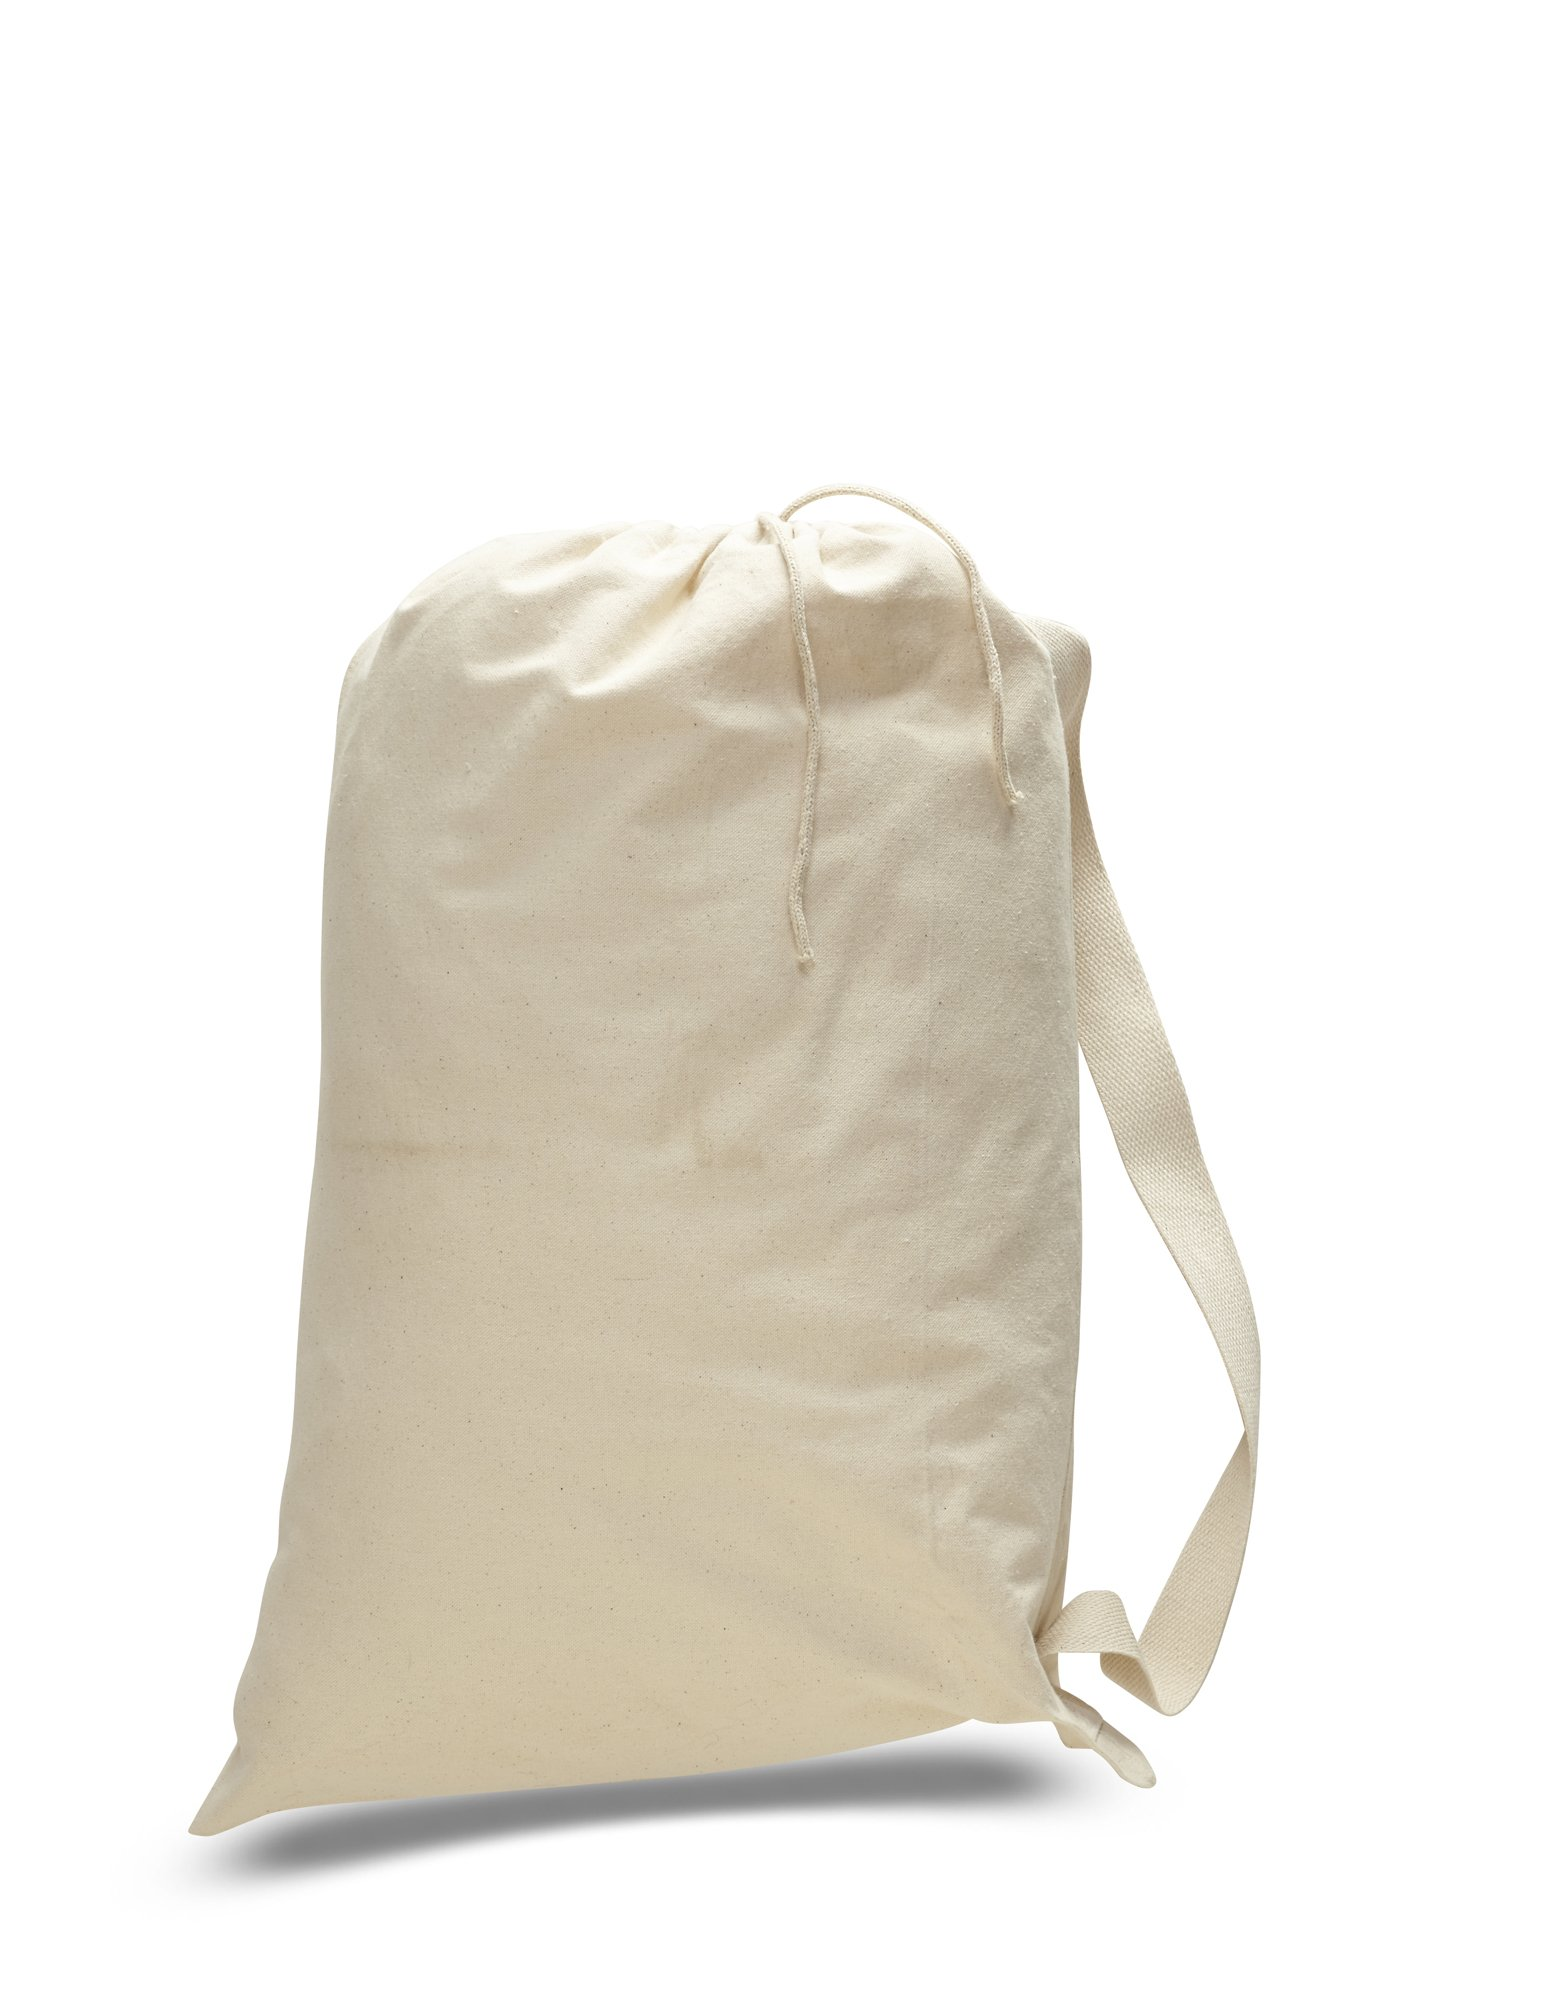 Pack of 12 - (1 Dozen) - Heavy Weight 100% Thick 12oz. Canvas Laundry Travel Garment Bags - Luggage Totes - Drawstring bags in BULK - With Shoulder Strap (Large, Natural)